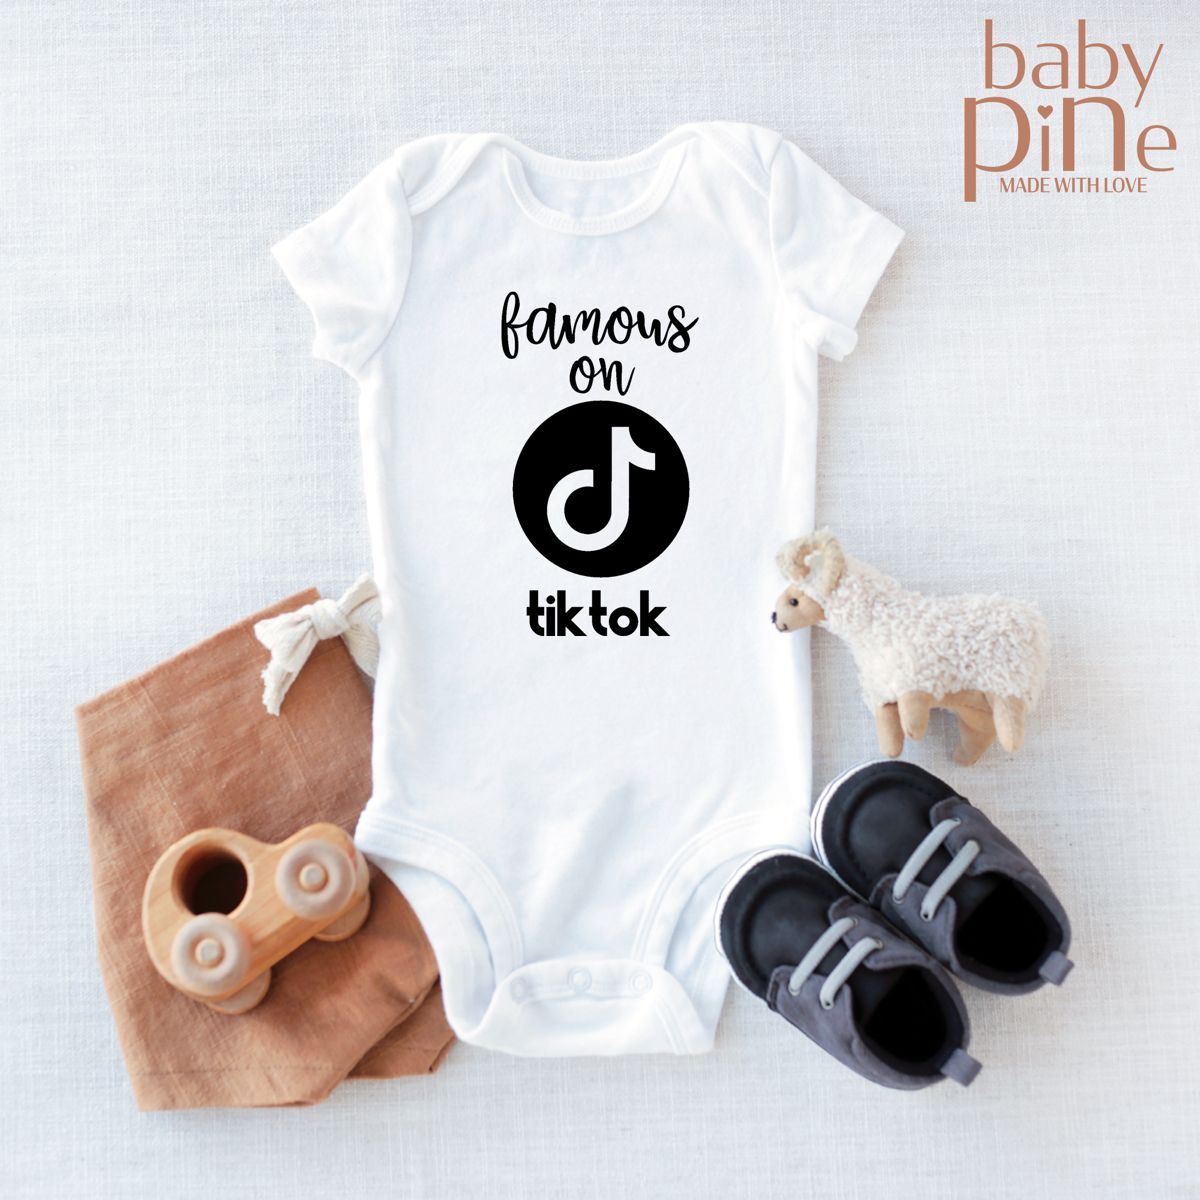 Pin On Cute Baby Outfits Onesies